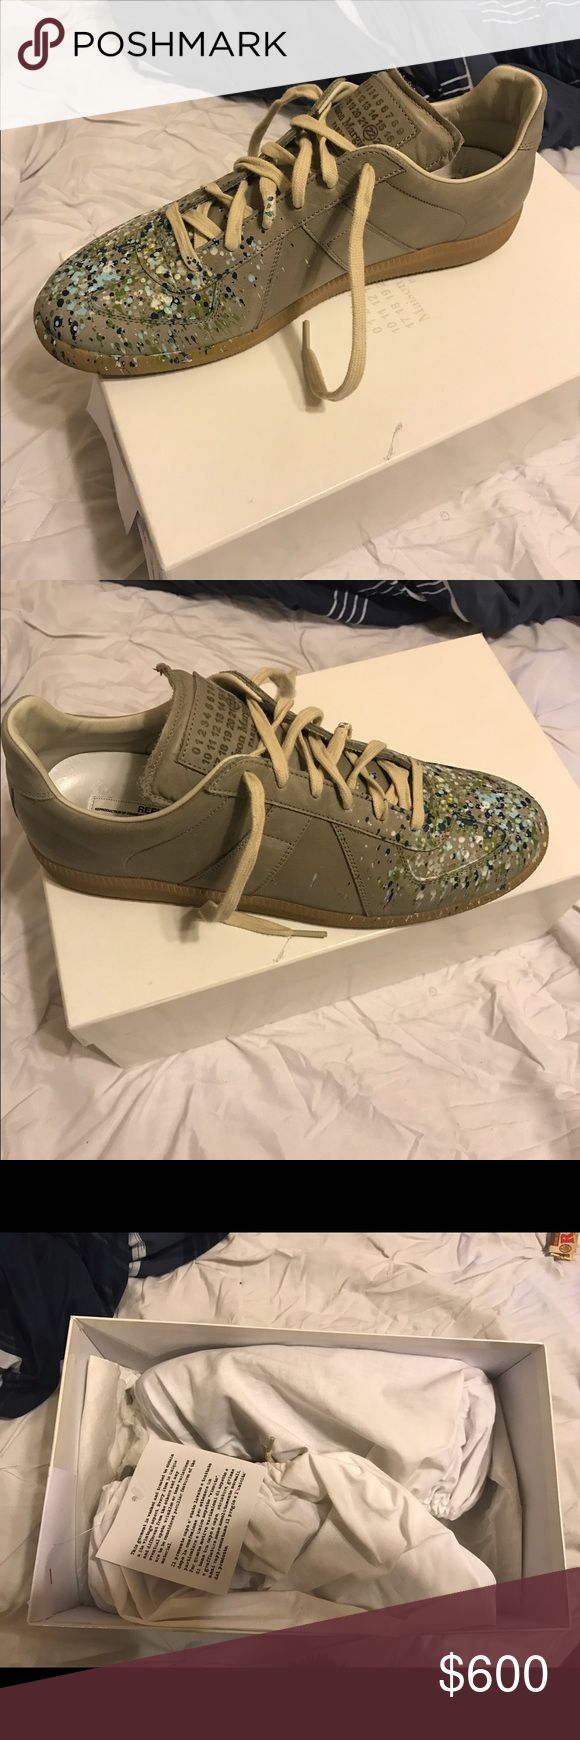 Men's Maison Margiela sneakers Men's maison Margiela sneakers never worn size 11 or 44 Maison Margiela Shoes Sneakers